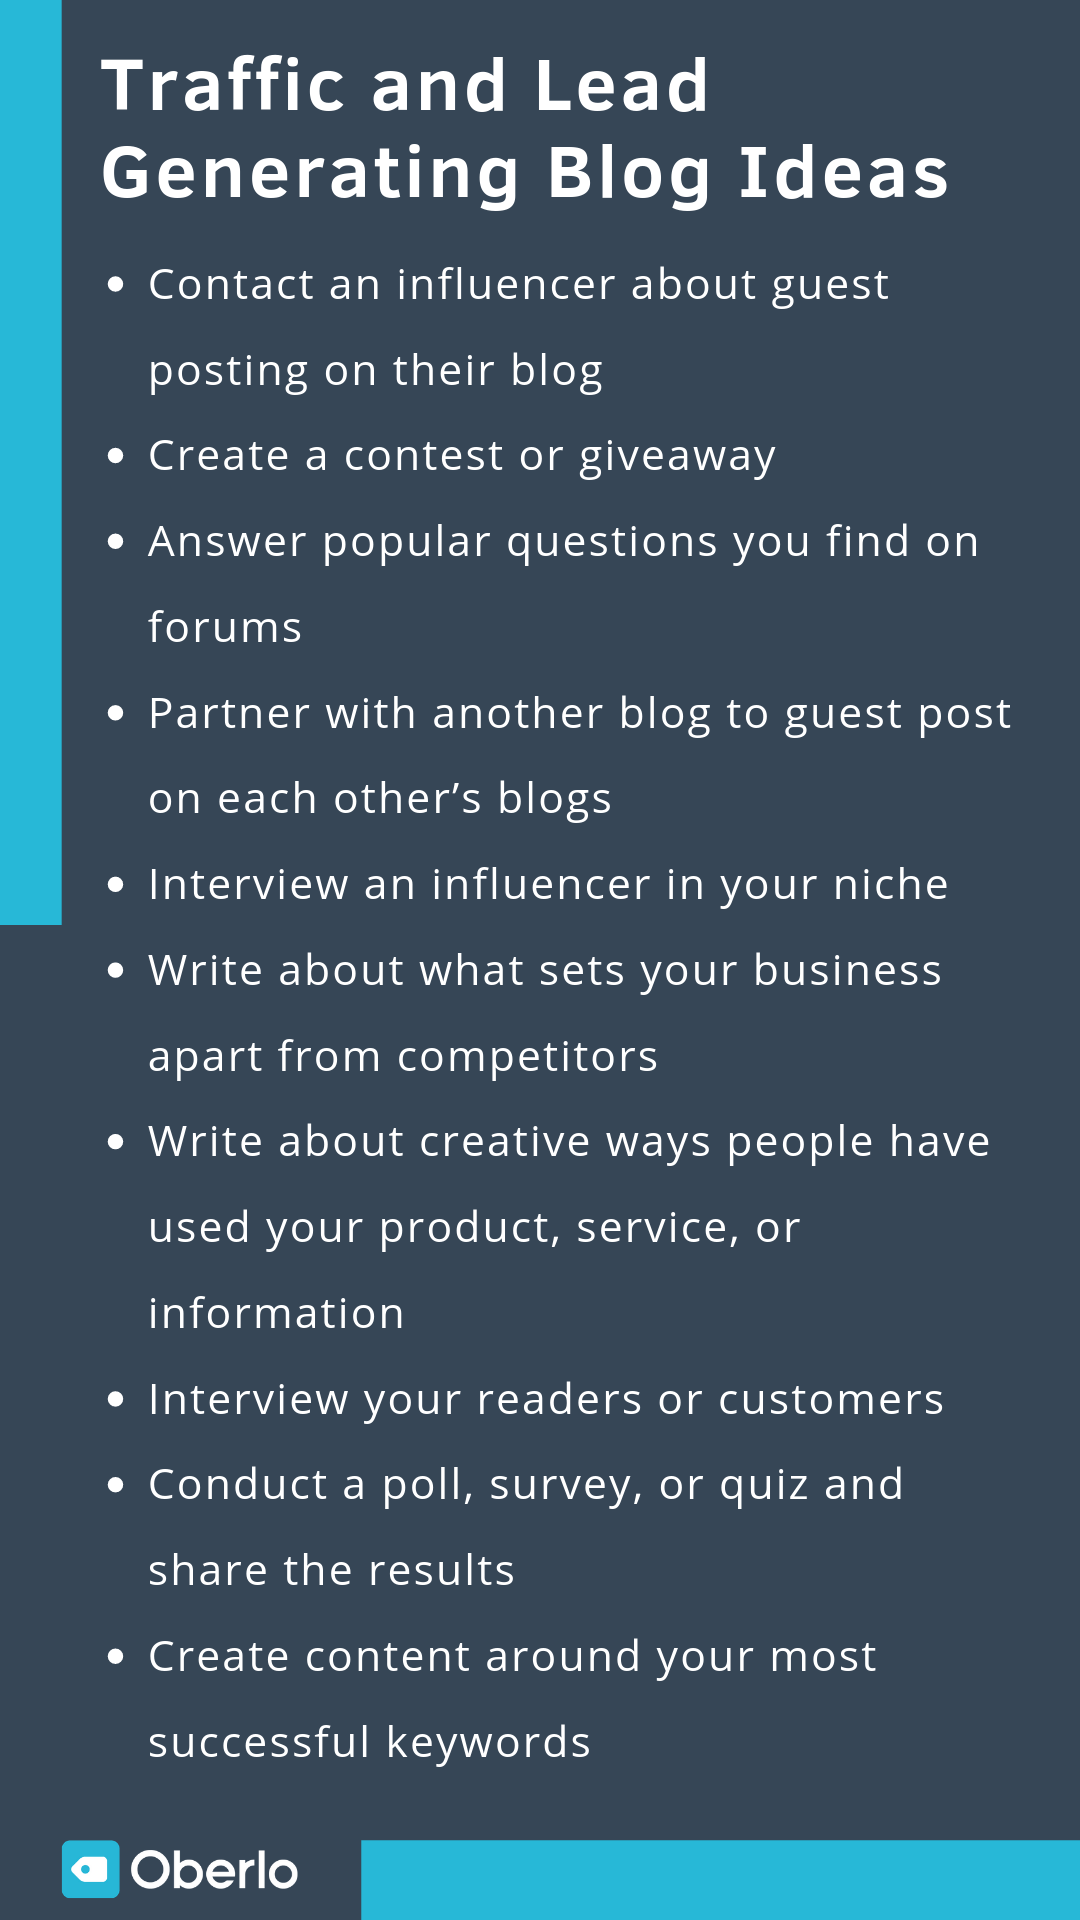 Traffic and Lead Generating Blog Ideas